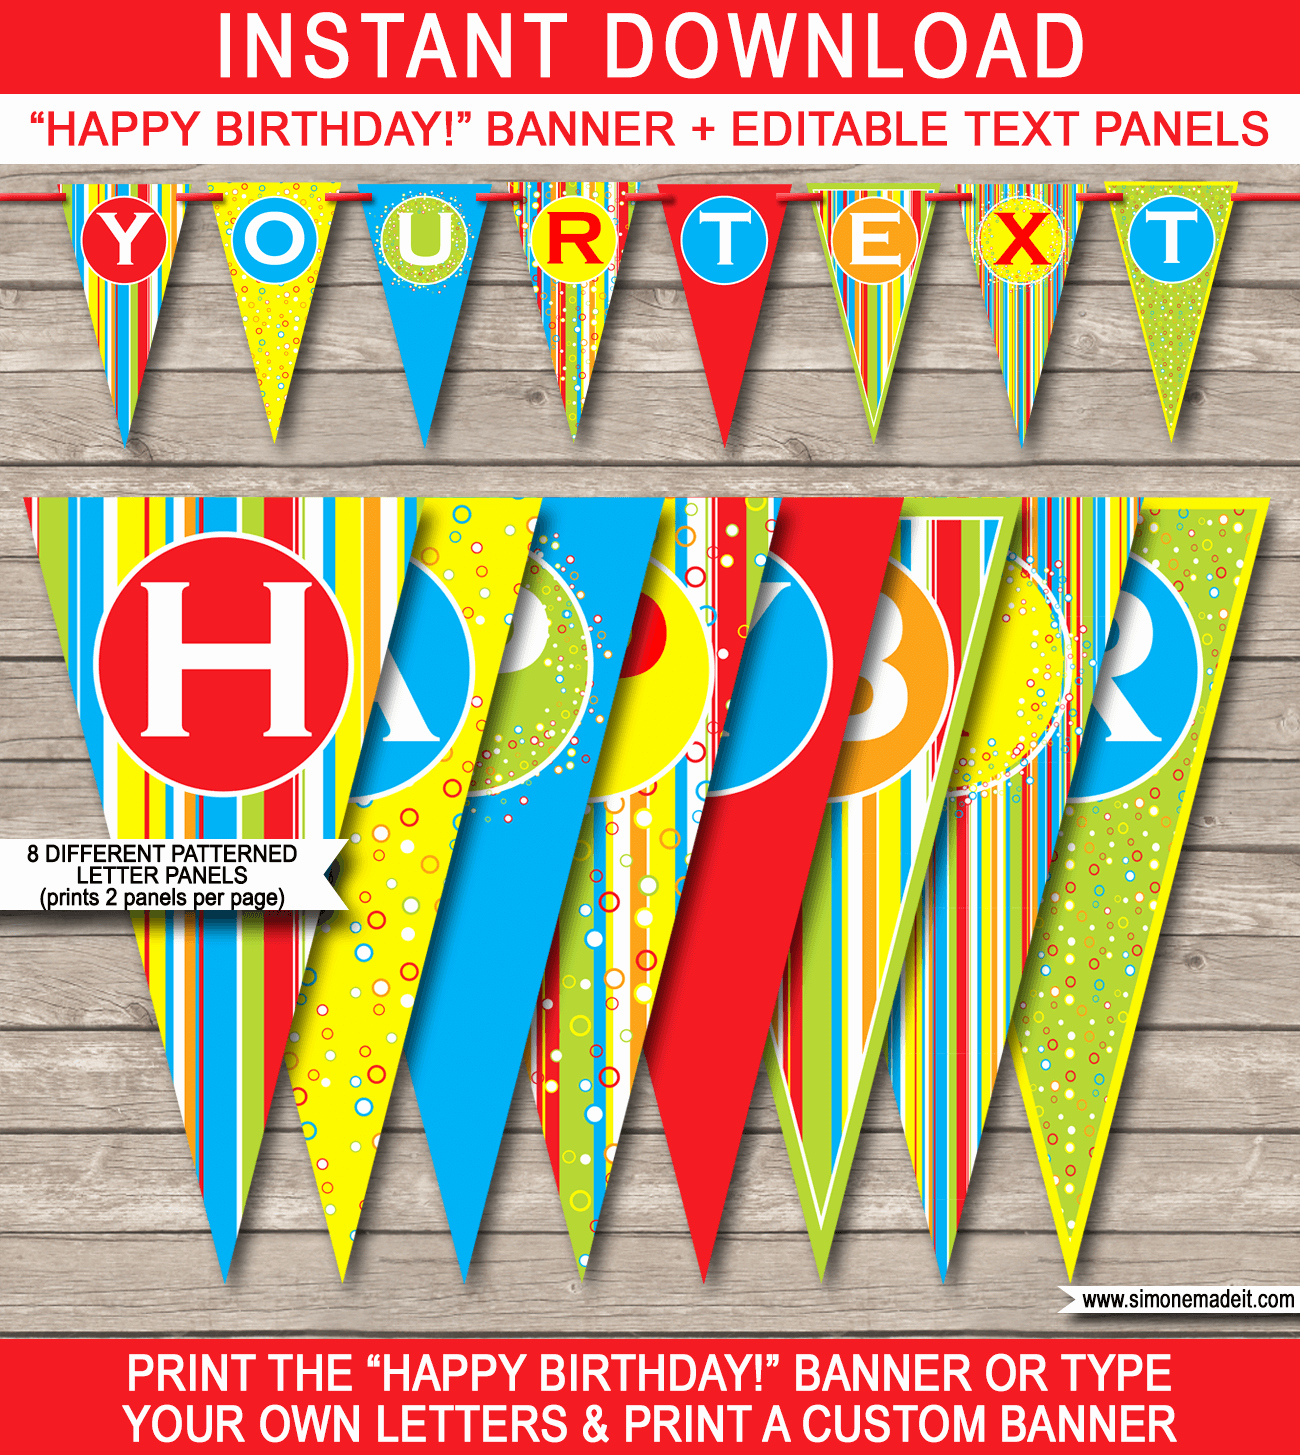 Happy Birthday Banner Print Out Inspirational Colorful Pennant Banner Template